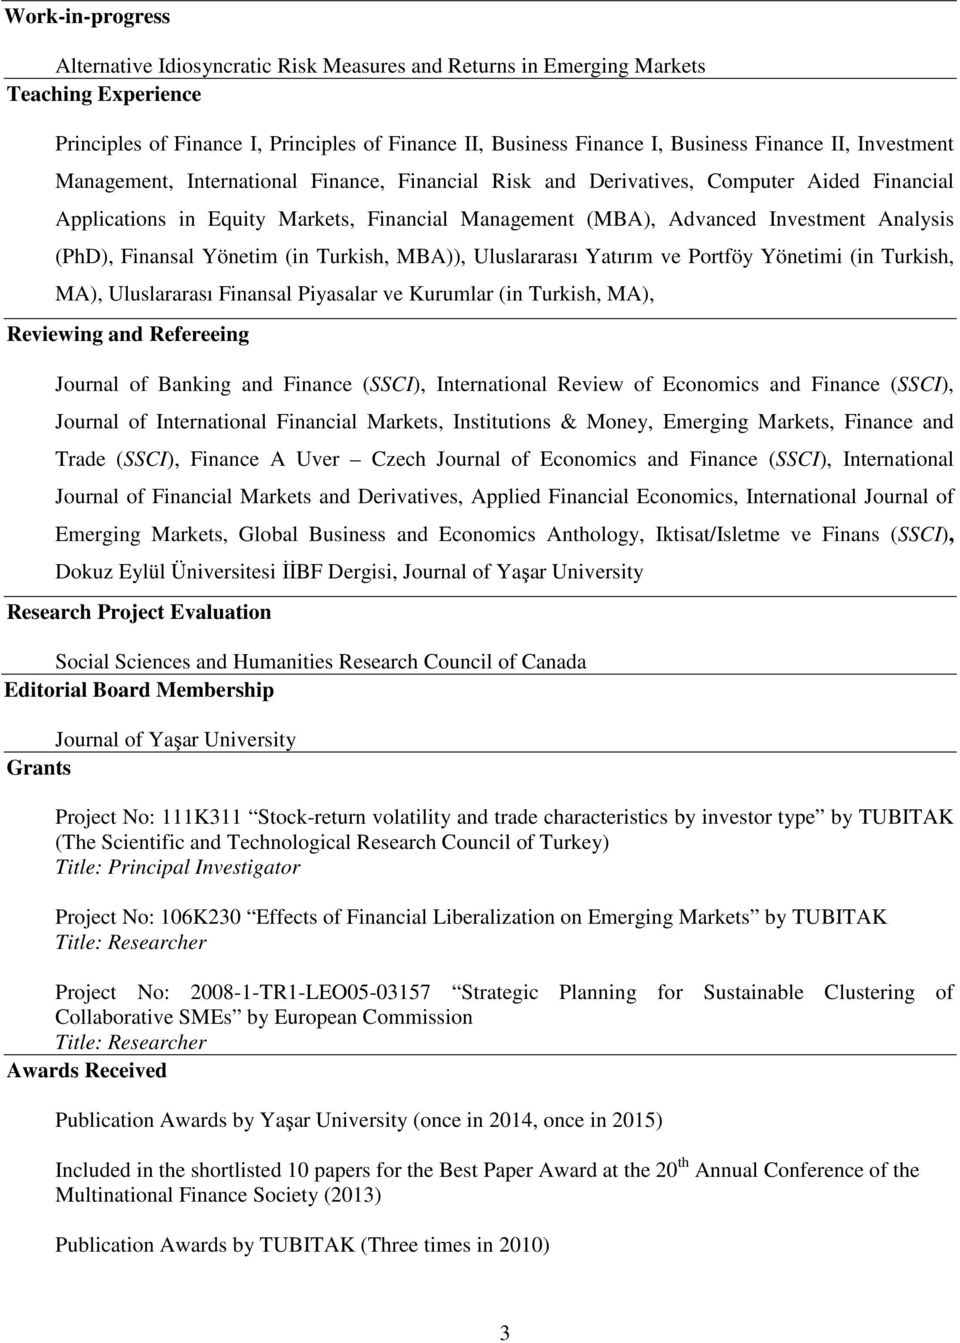 (PhD), Finansal Yönetim (in Turkish, MBA)), Uluslararası Yatırım ve Portföy Yönetimi (in Turkish, MA), Uluslararası Finansal Piyasalar ve Kurumlar (in Turkish, MA), Reviewing and Refereeing Journal